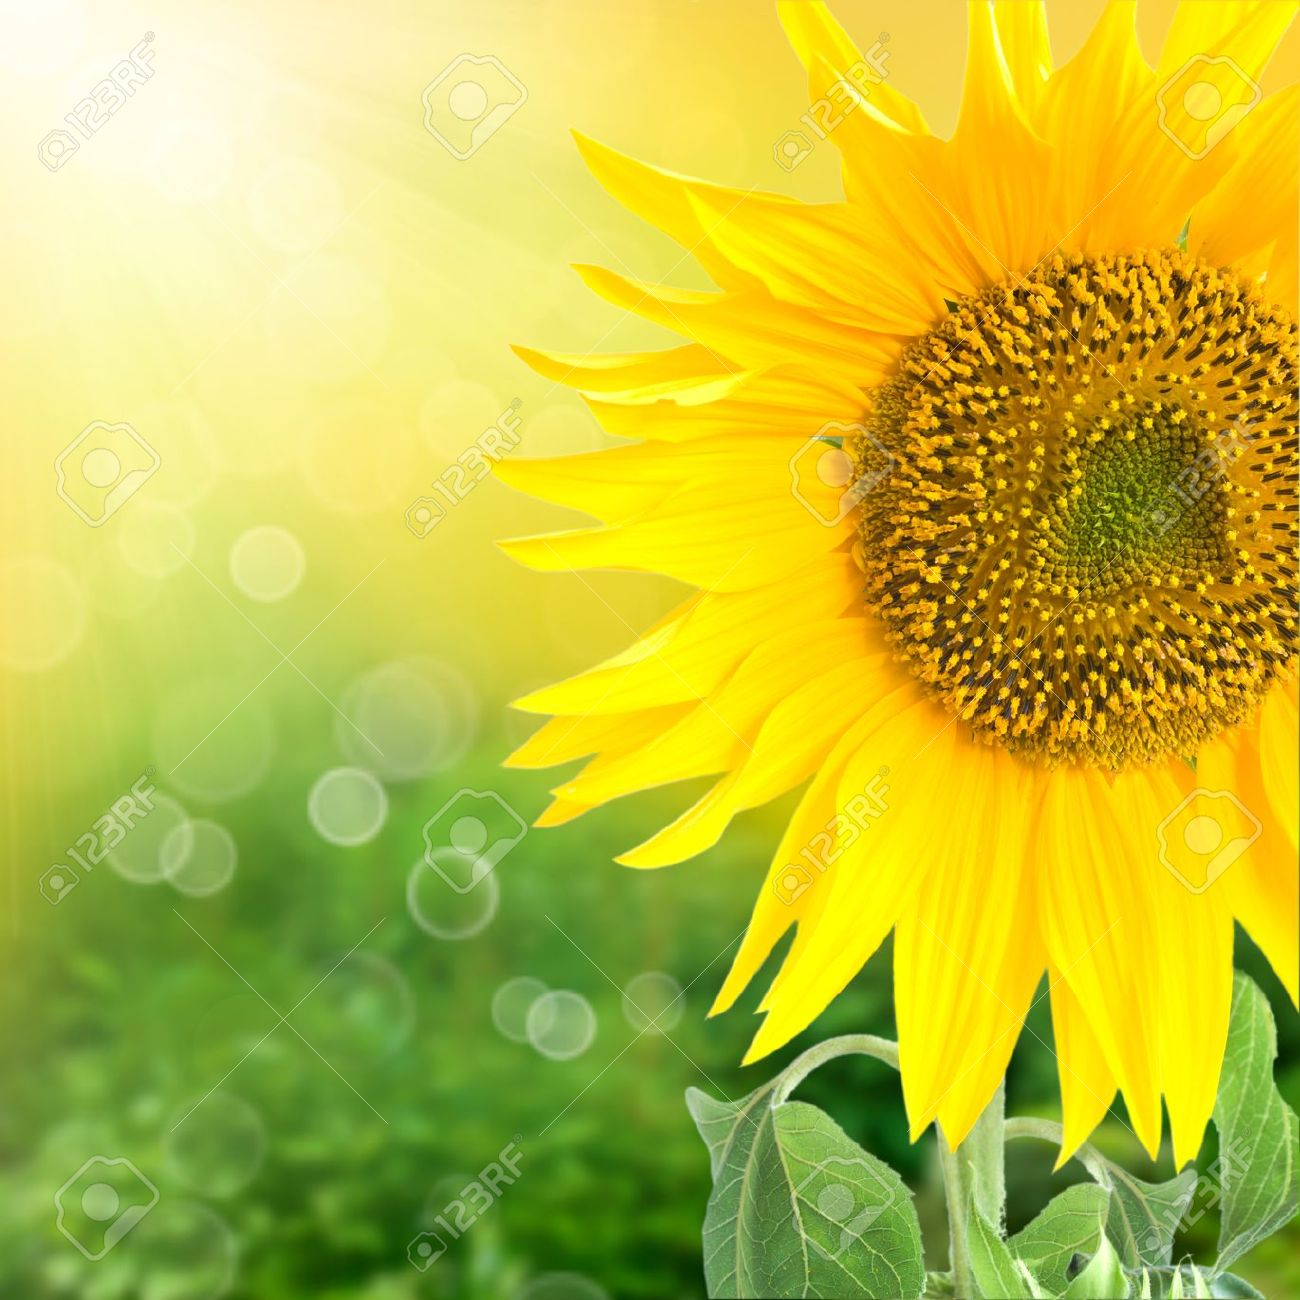 Sunflower Field Images & Stock Pictures  Royalty Free Sunflower